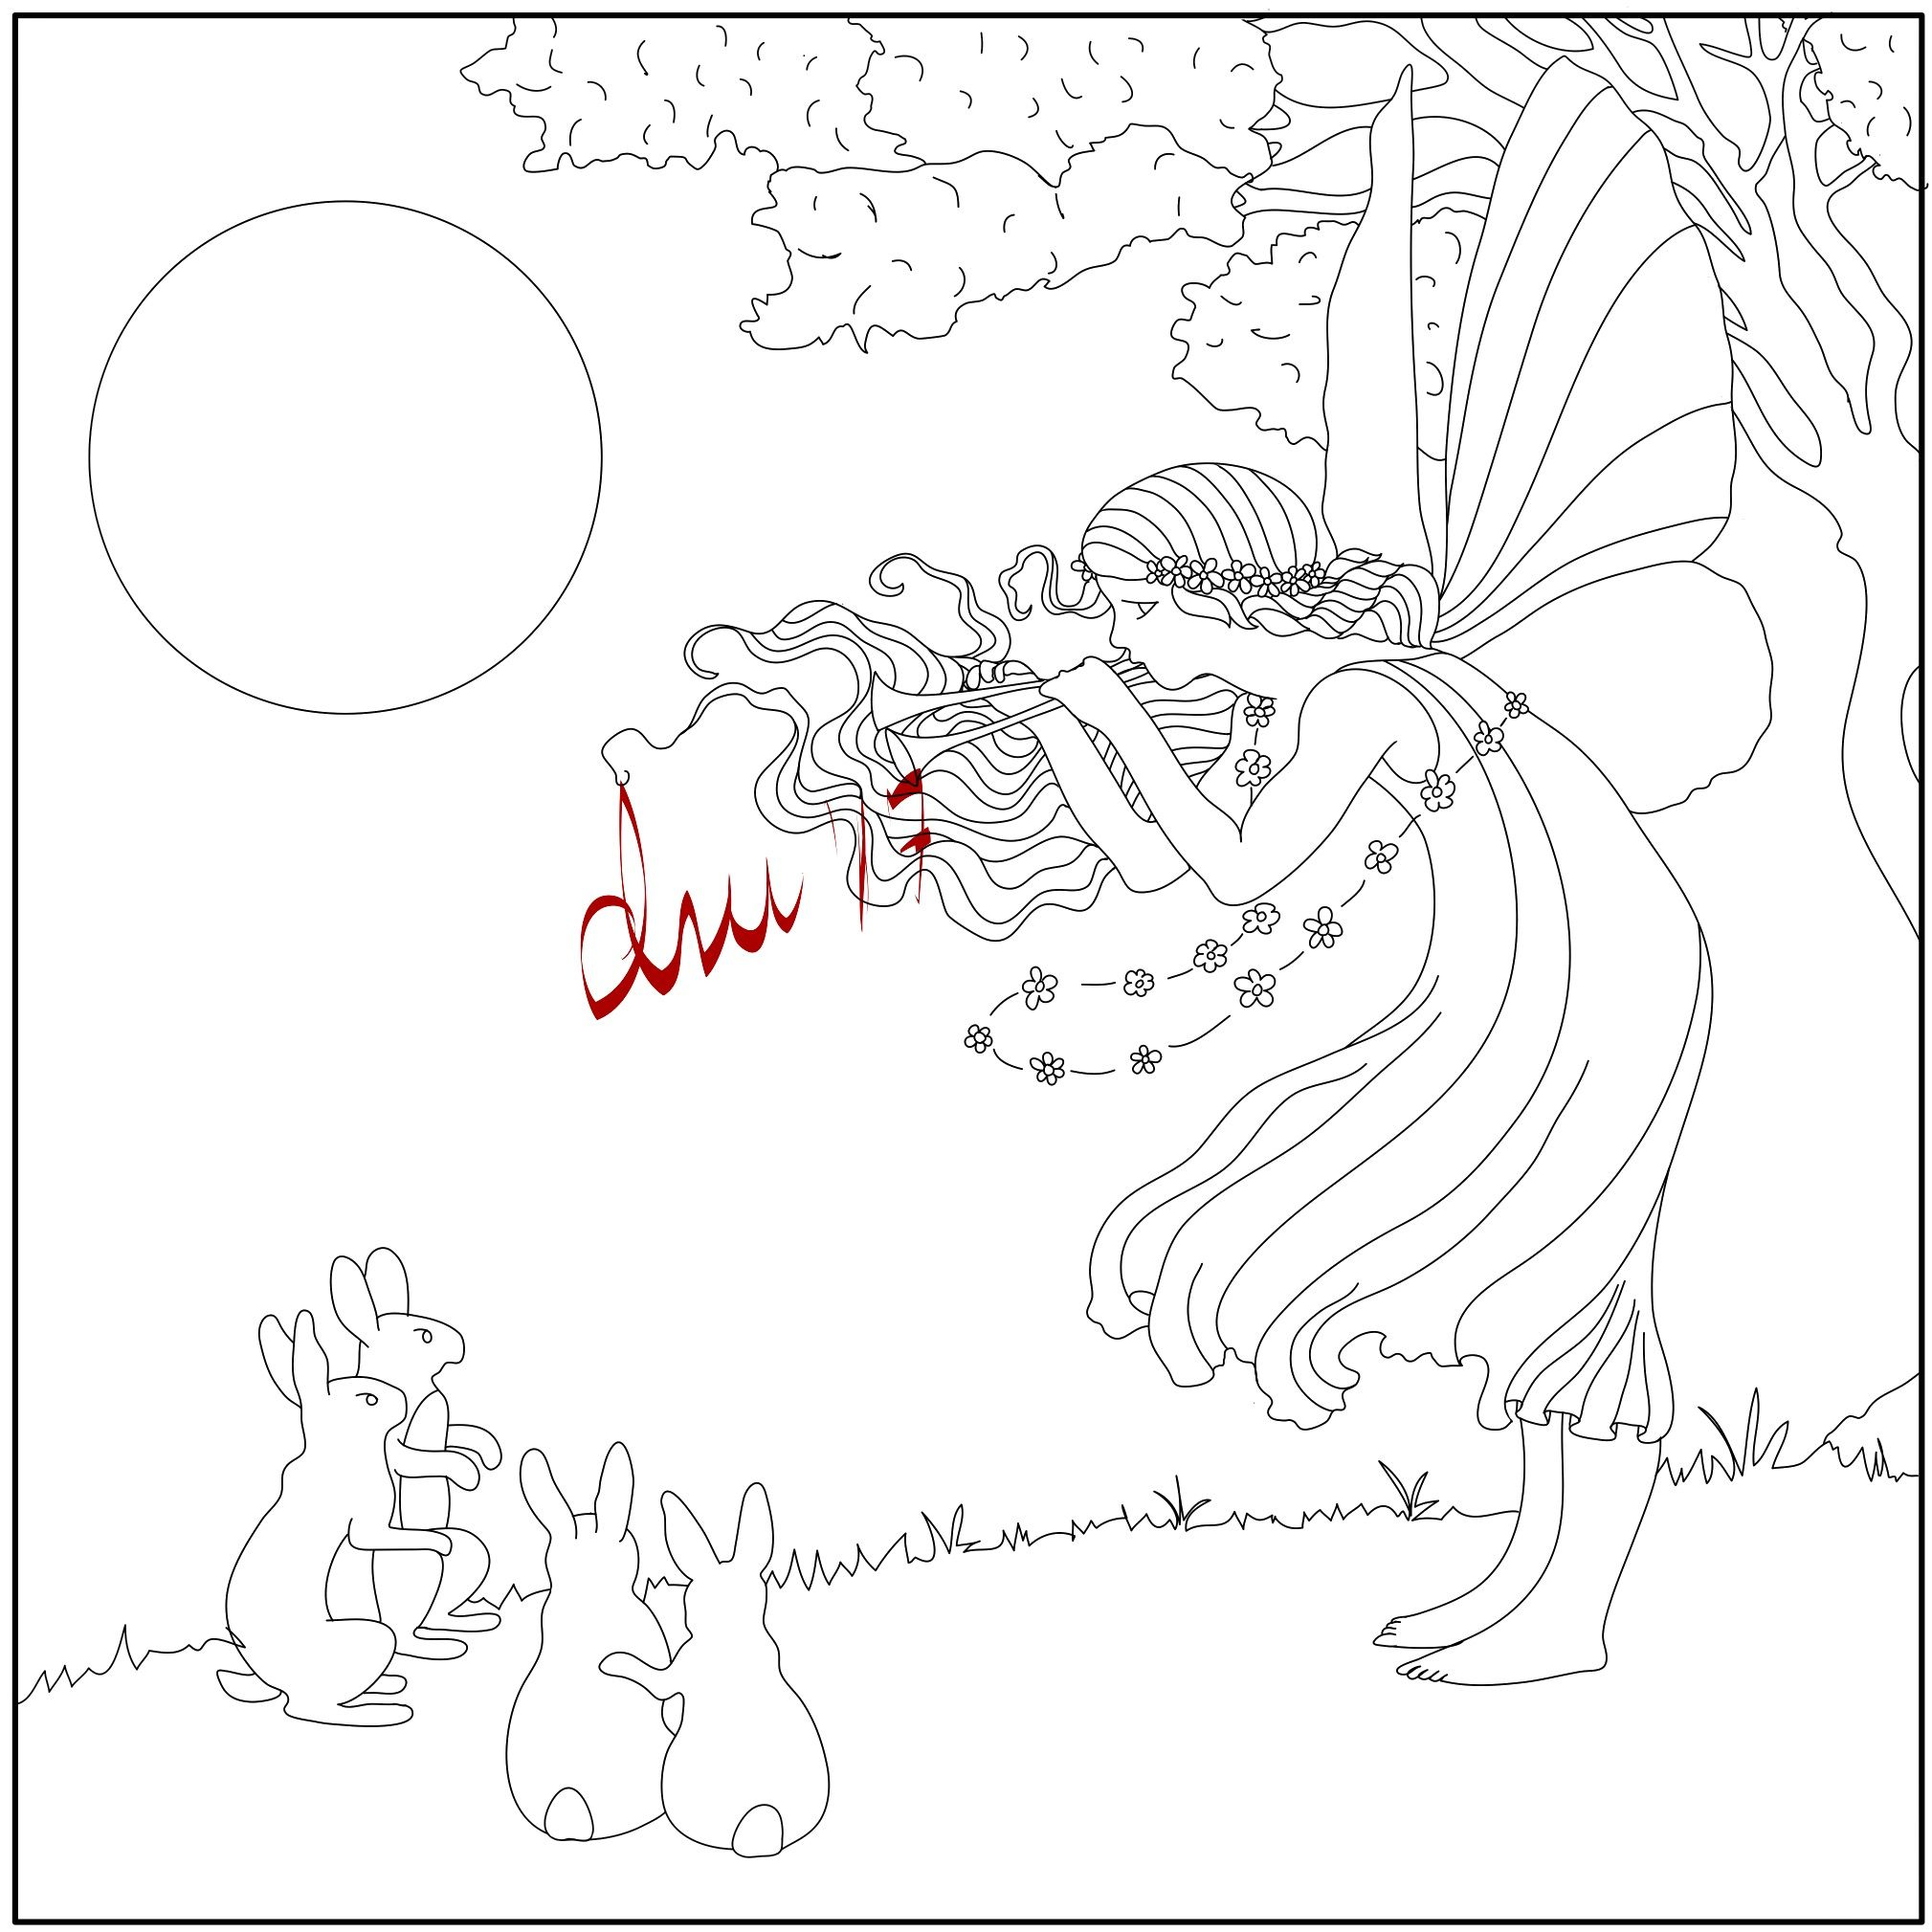 Adult Coloring Book Illustration | Adult Coloring Book Illustrations ...